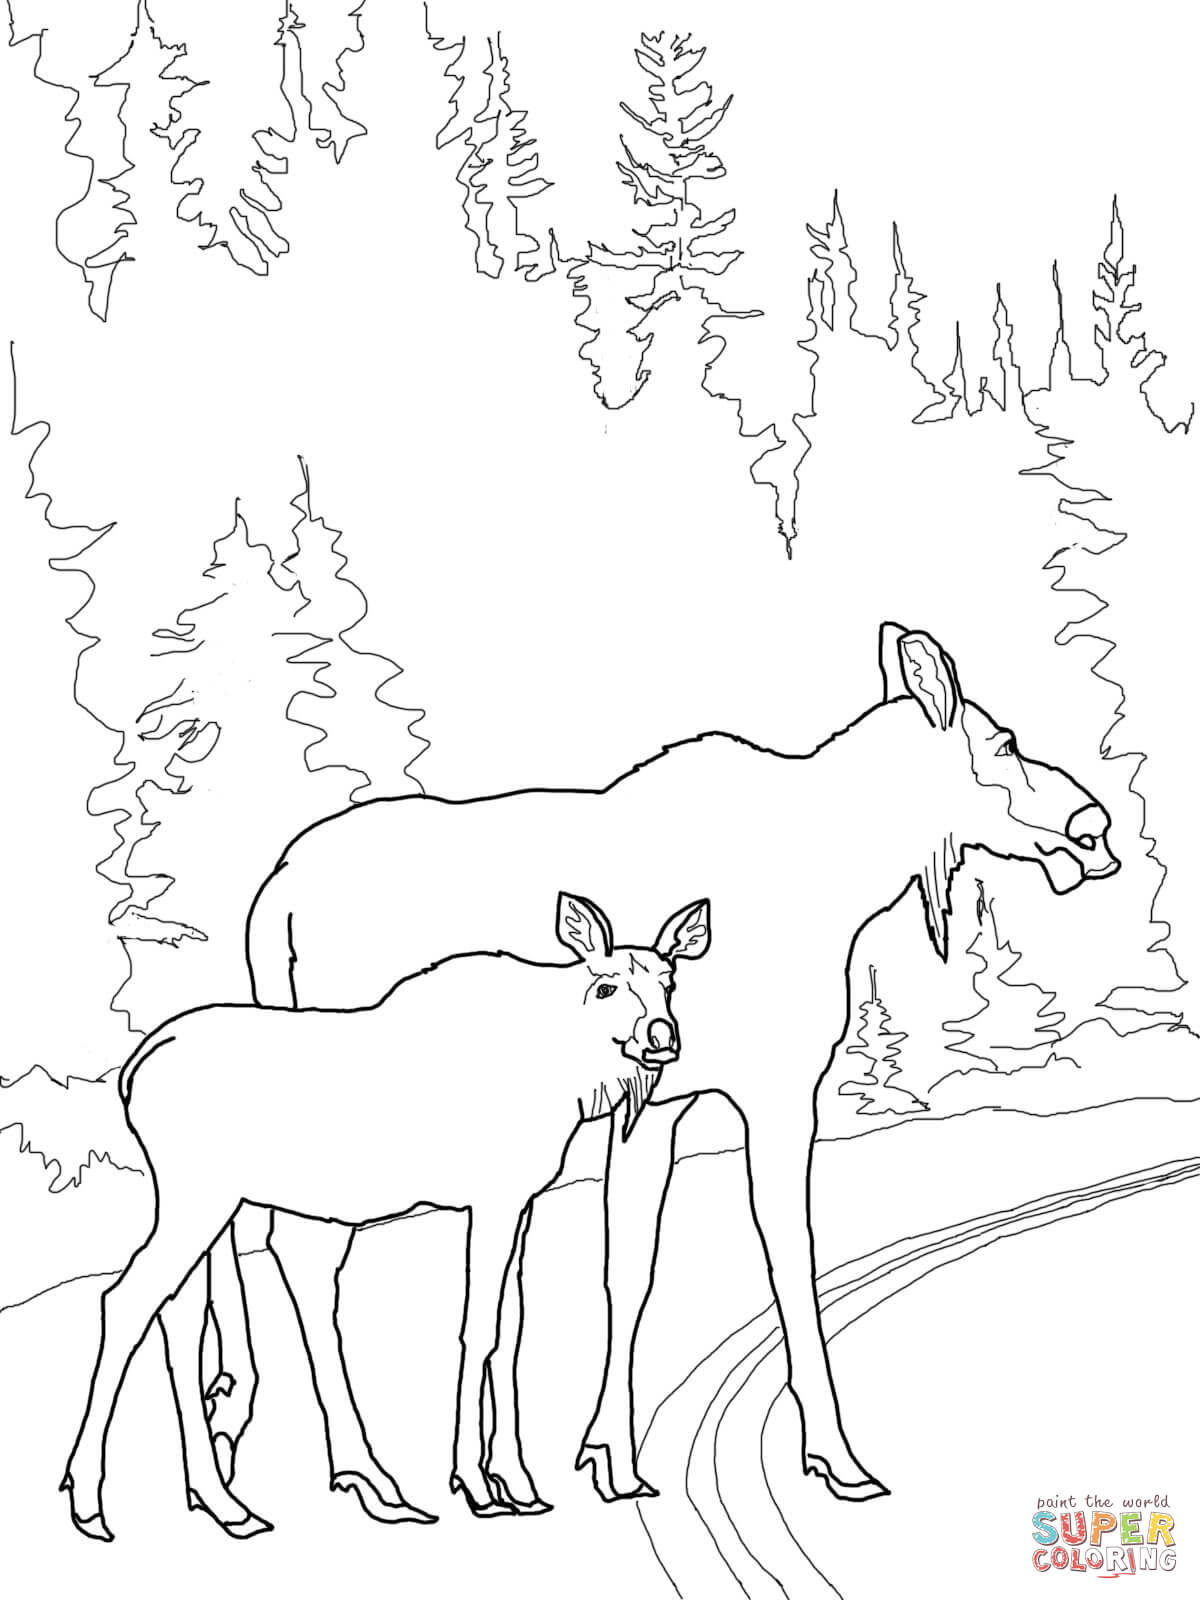 Moose Cow With Calf Crossing The Road Coloring Page